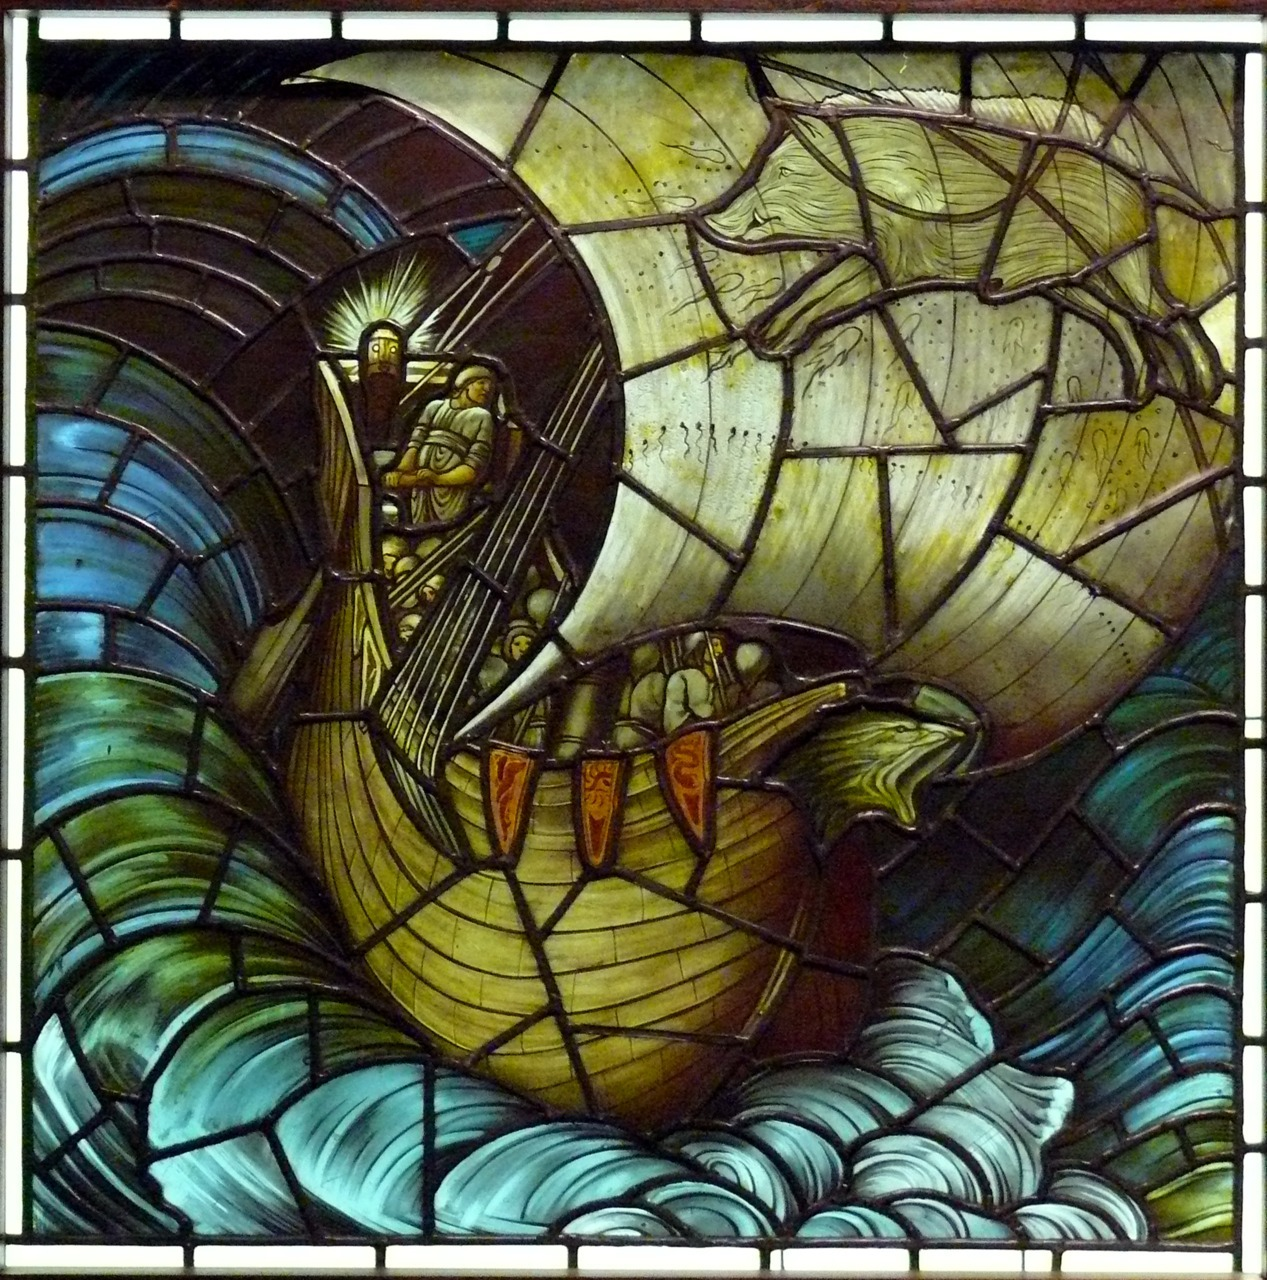 Viking ship in stained glass by Edward Burne-Jones, 1883